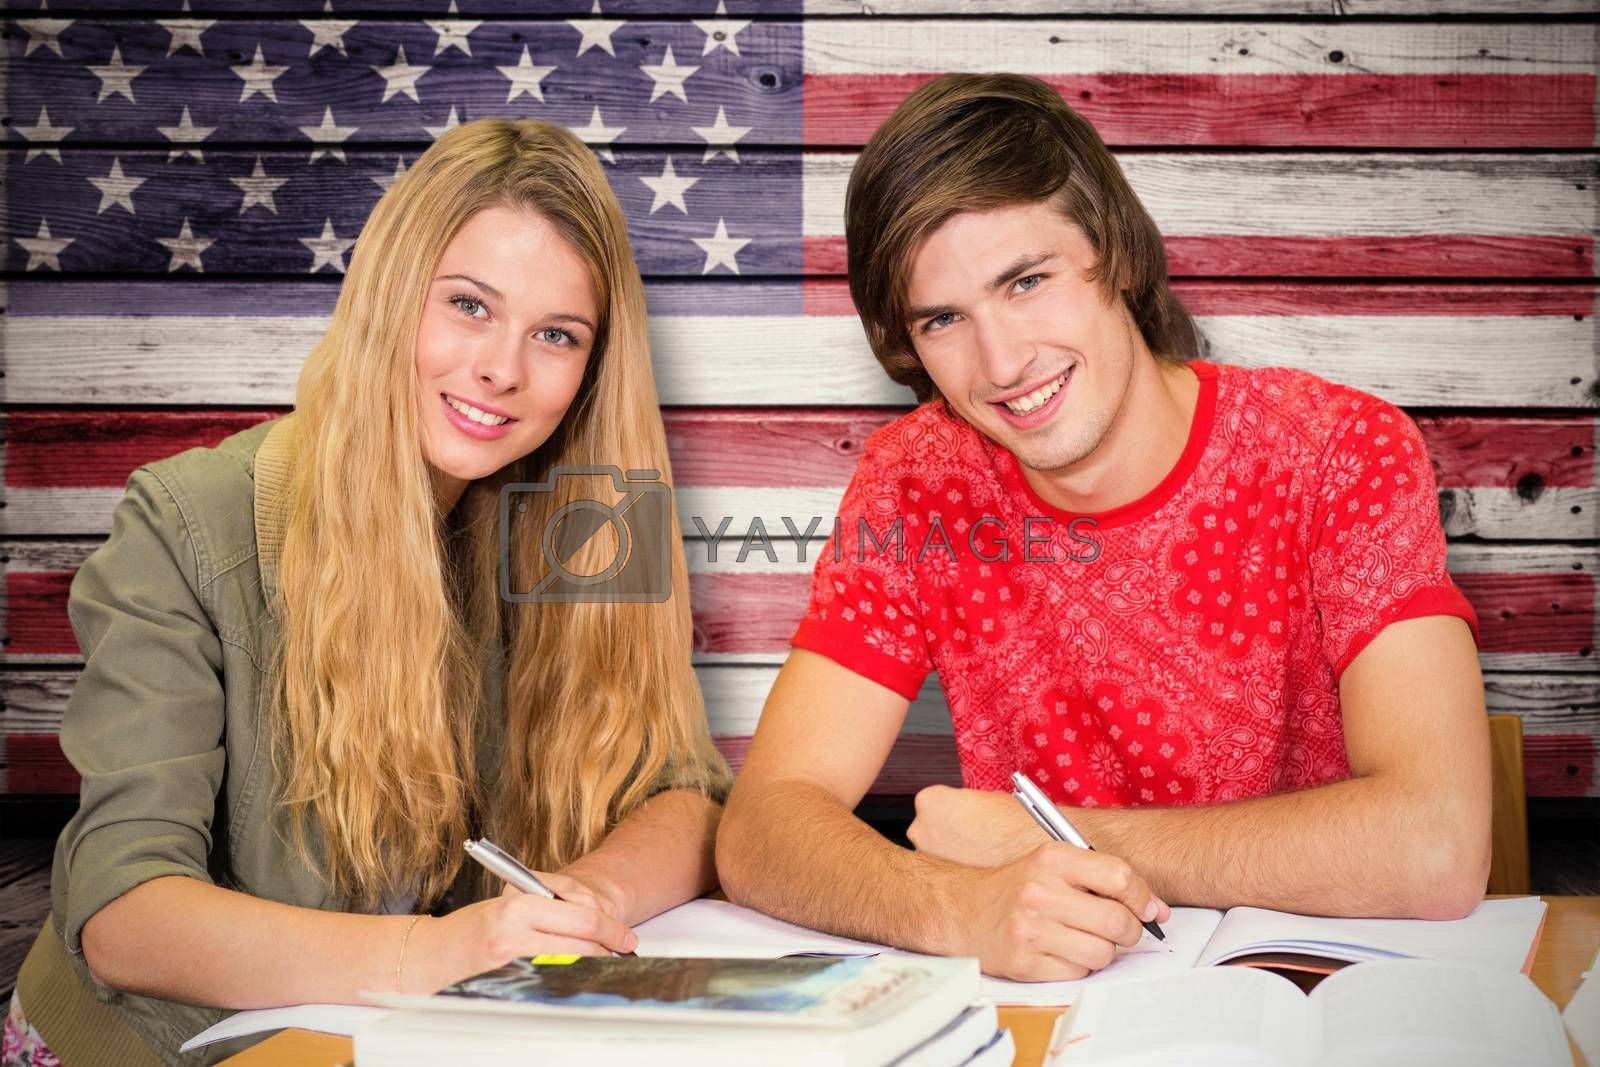 Students studying against composite image of usa national flag